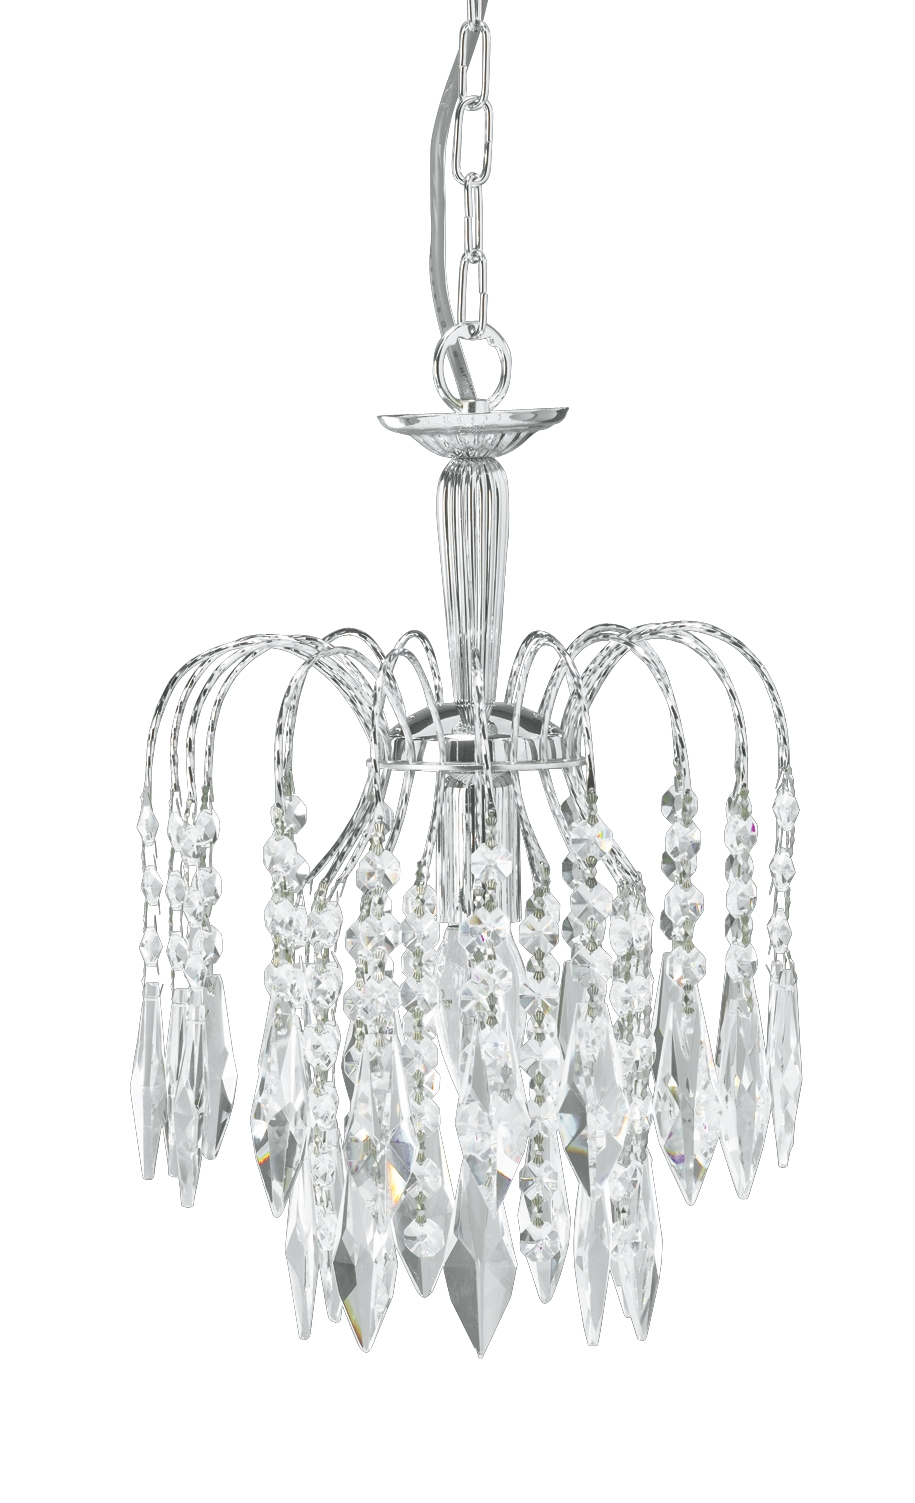 Waterfall Small Chandelier Chrome Throughout Small Chrome Chandelier (Image 15 of 15)